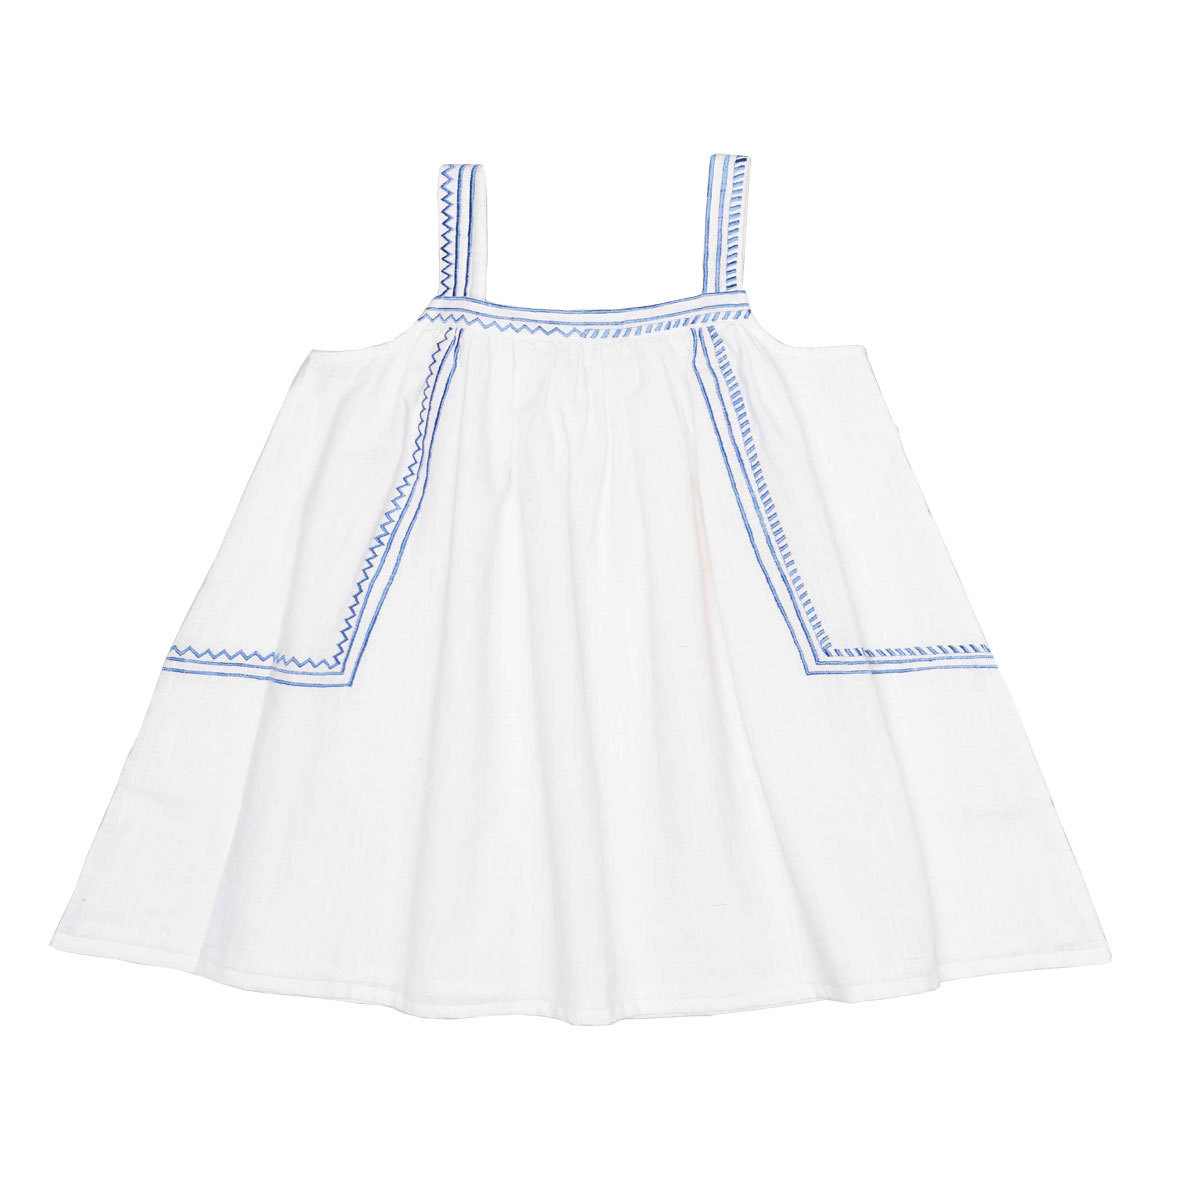 Hauts bébé Top Leo - Blue Embroidery - 2 Ans Top Leo - Blue Embroidery - 2 Ans